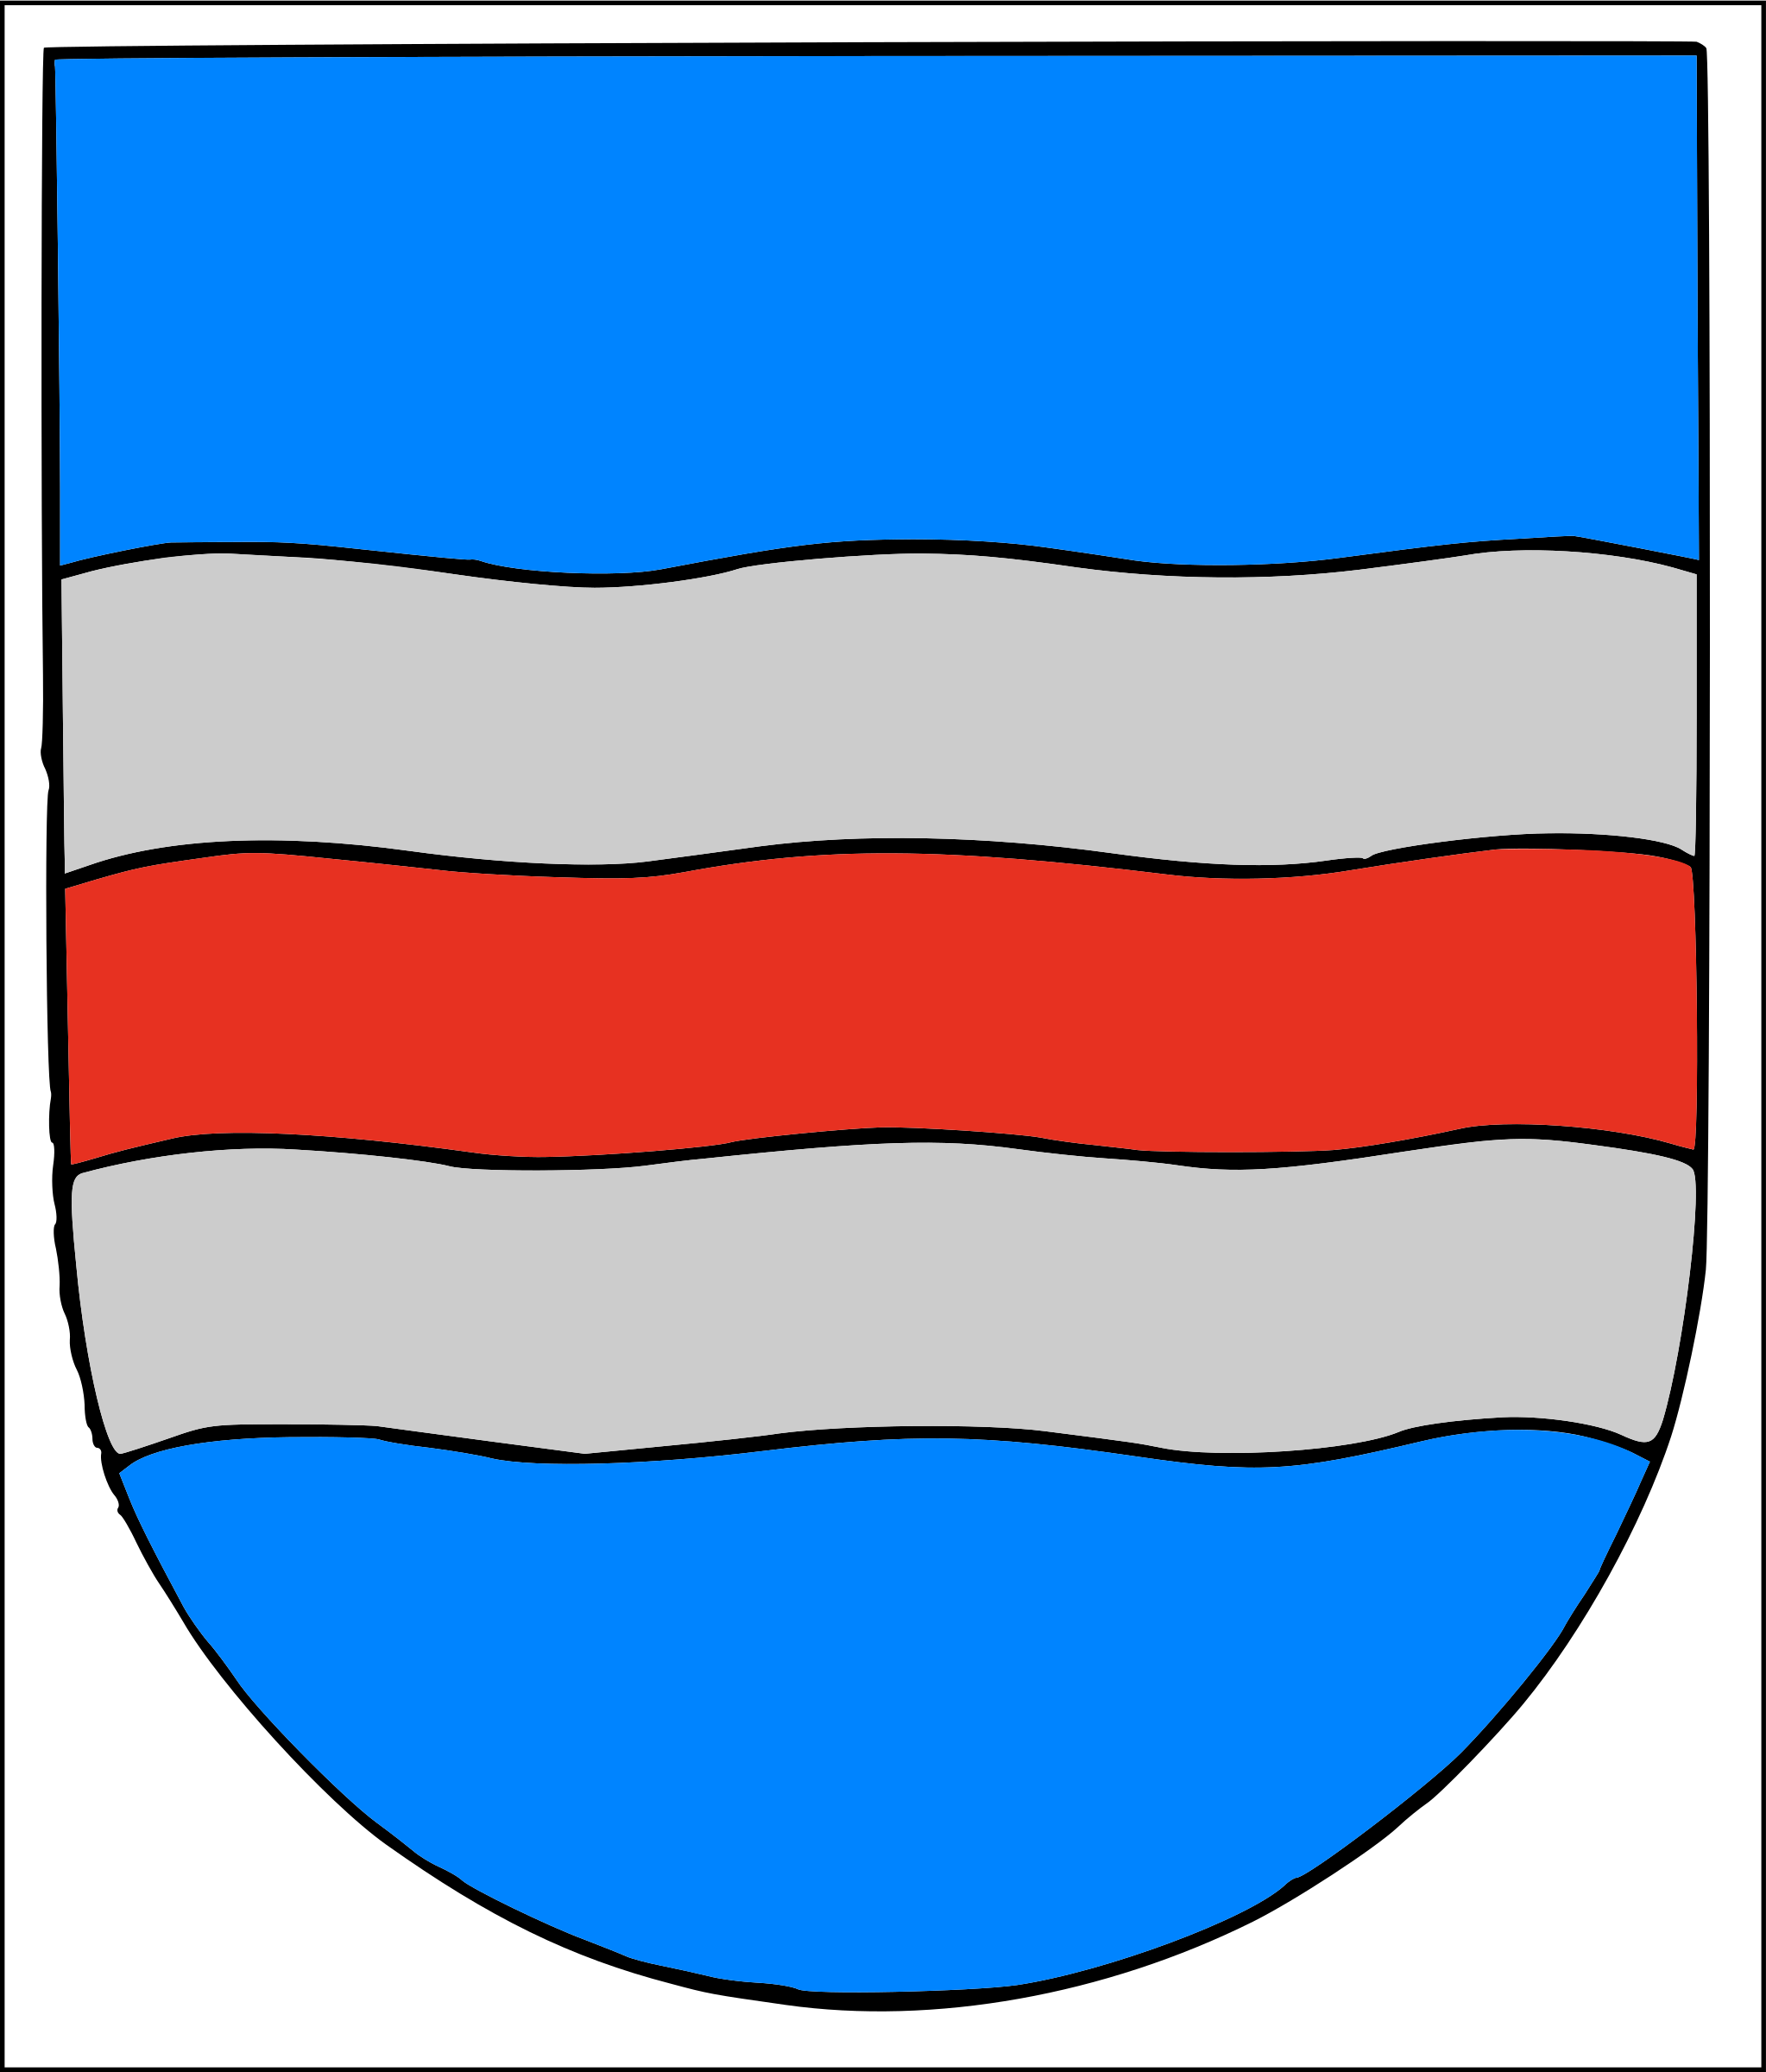 Medelpad coat of arms by liftarn